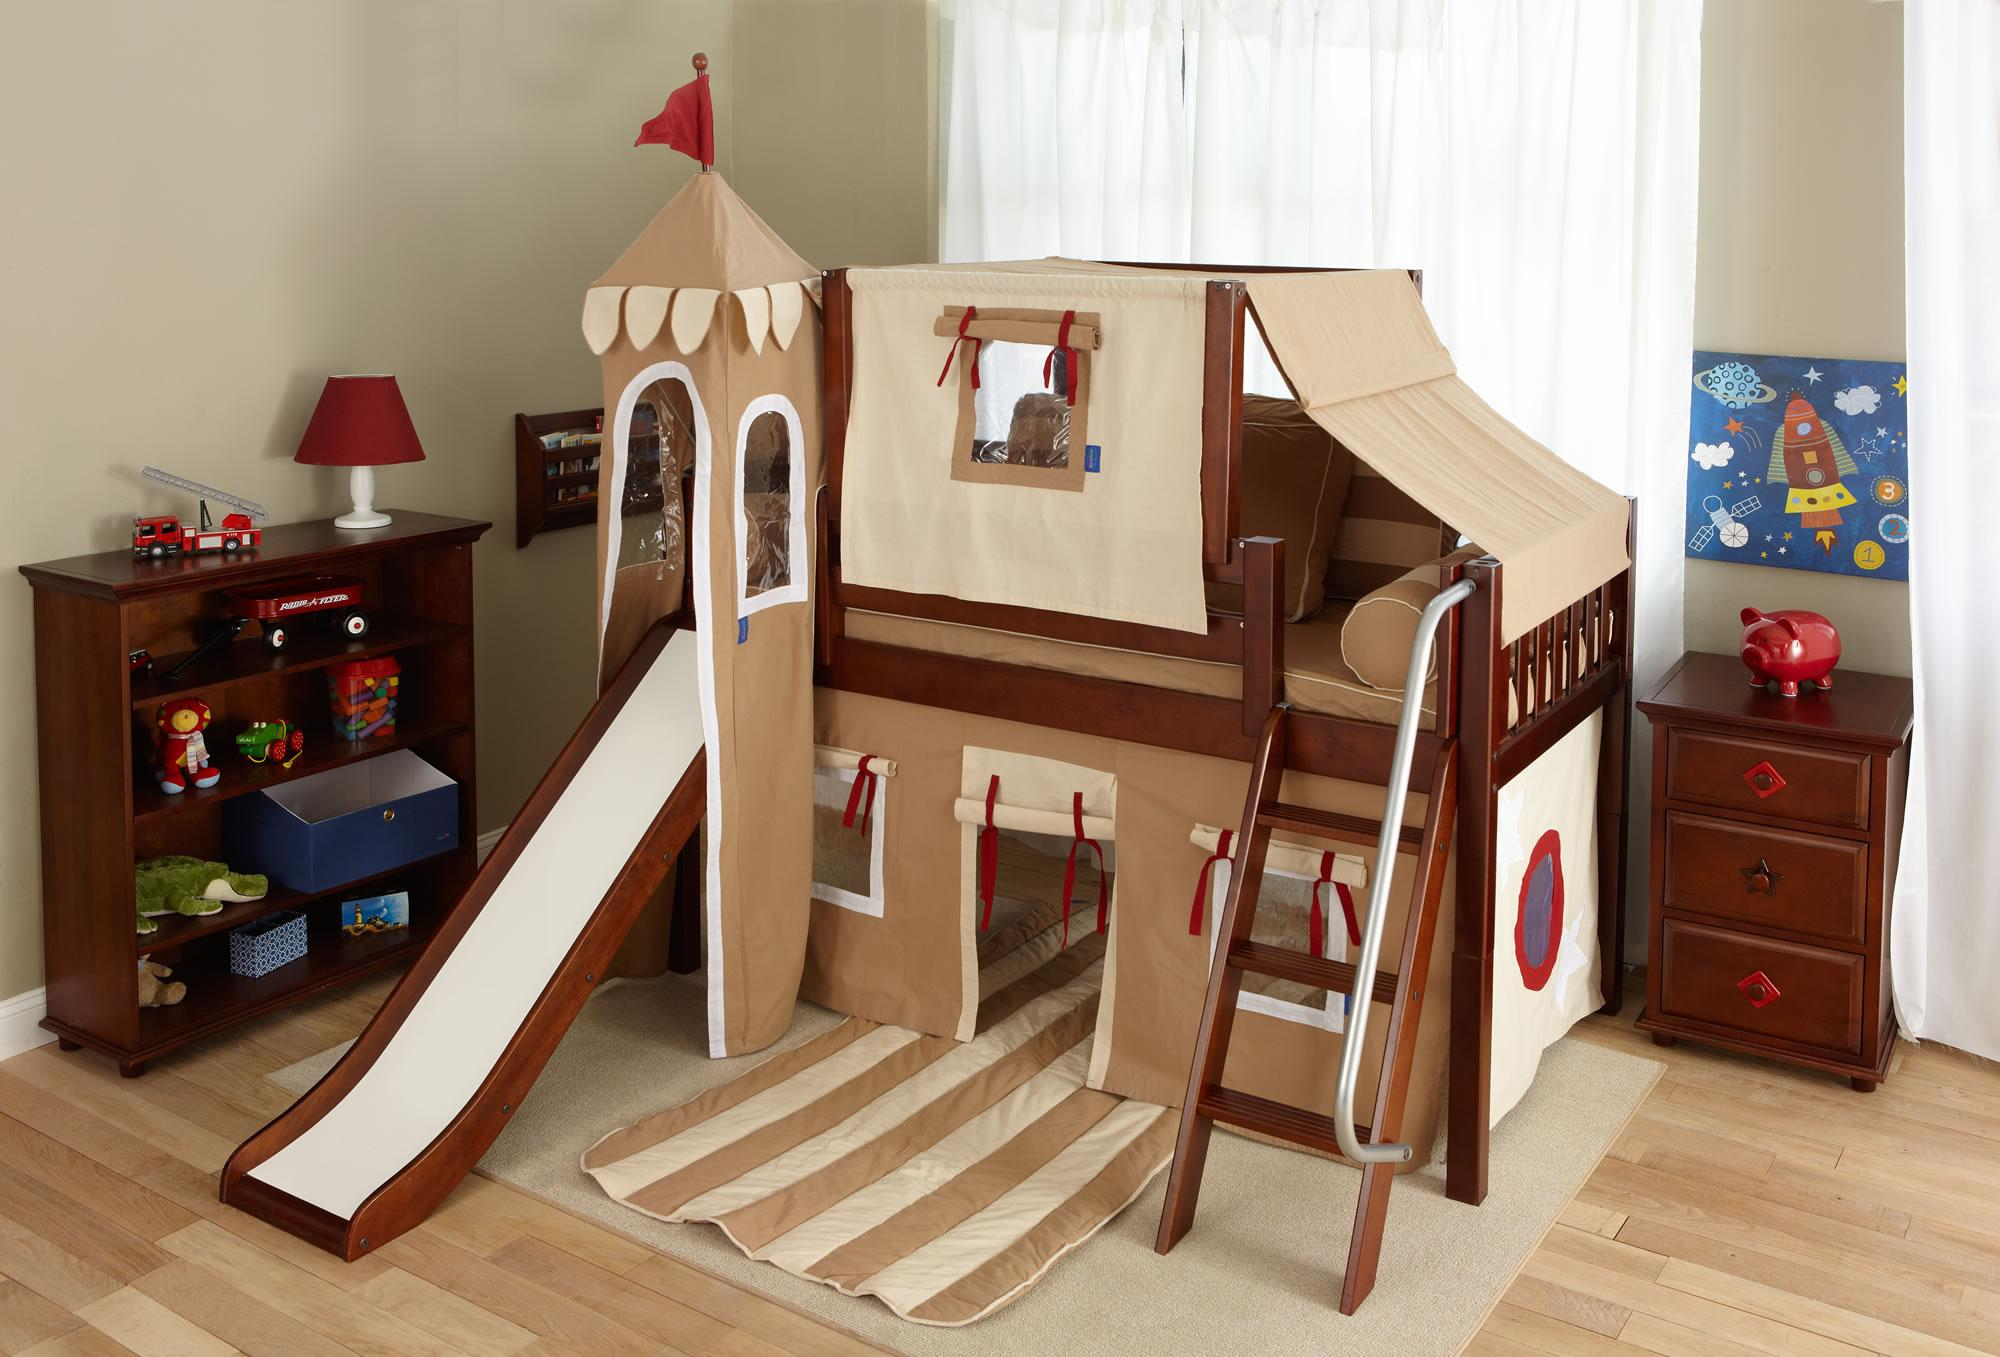 Kids furniture warehouse in pompano beach fl 954 933 1 for A furniture warehouse